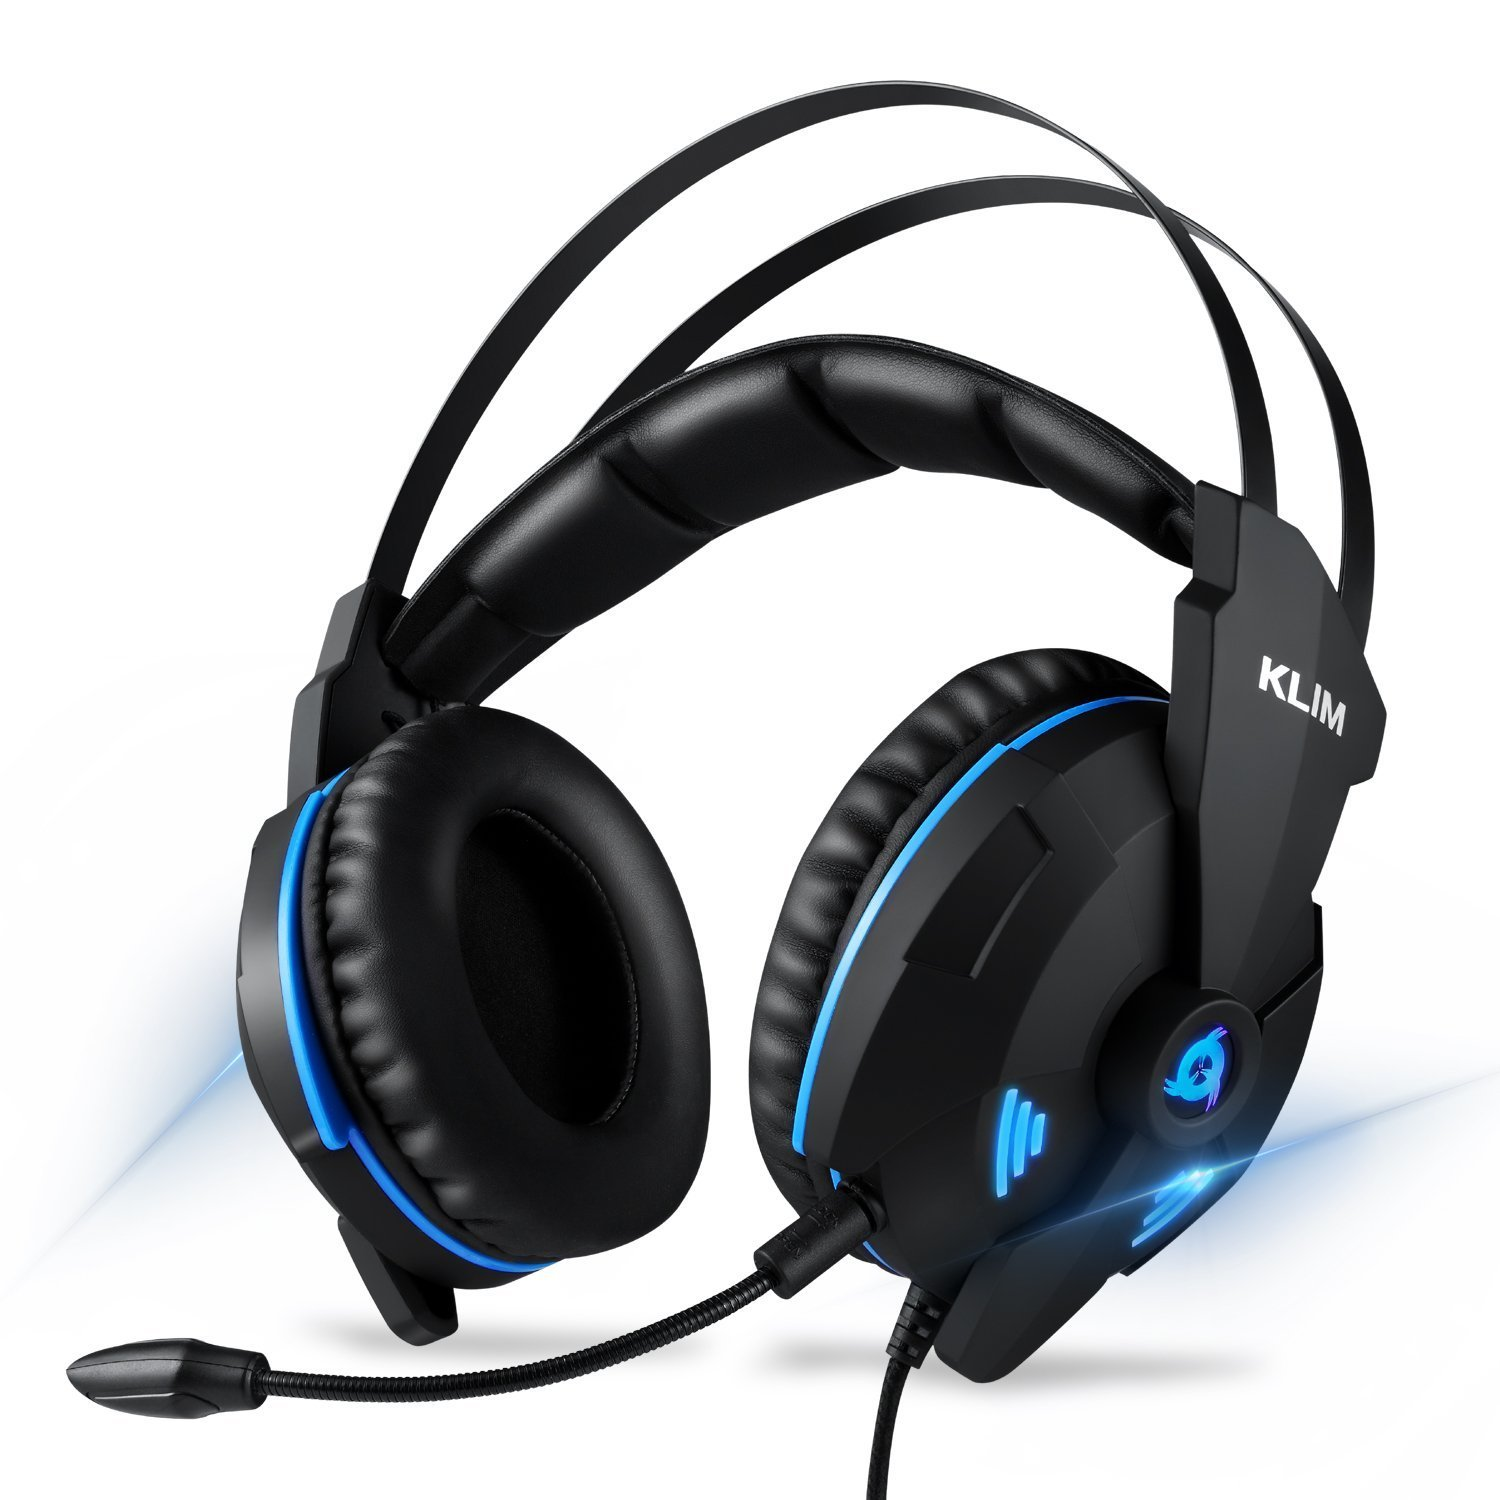 ⭐️ KLIM IMPACT - USB Gaming Headset - 7.1 Surround Sound + Noise Cancelling - High definition Audio + Strong bass - Video Games Headphones Audifonos with Microphone for PC Gamer PS4 - Noise Cancelling KLIM Technologies 207382